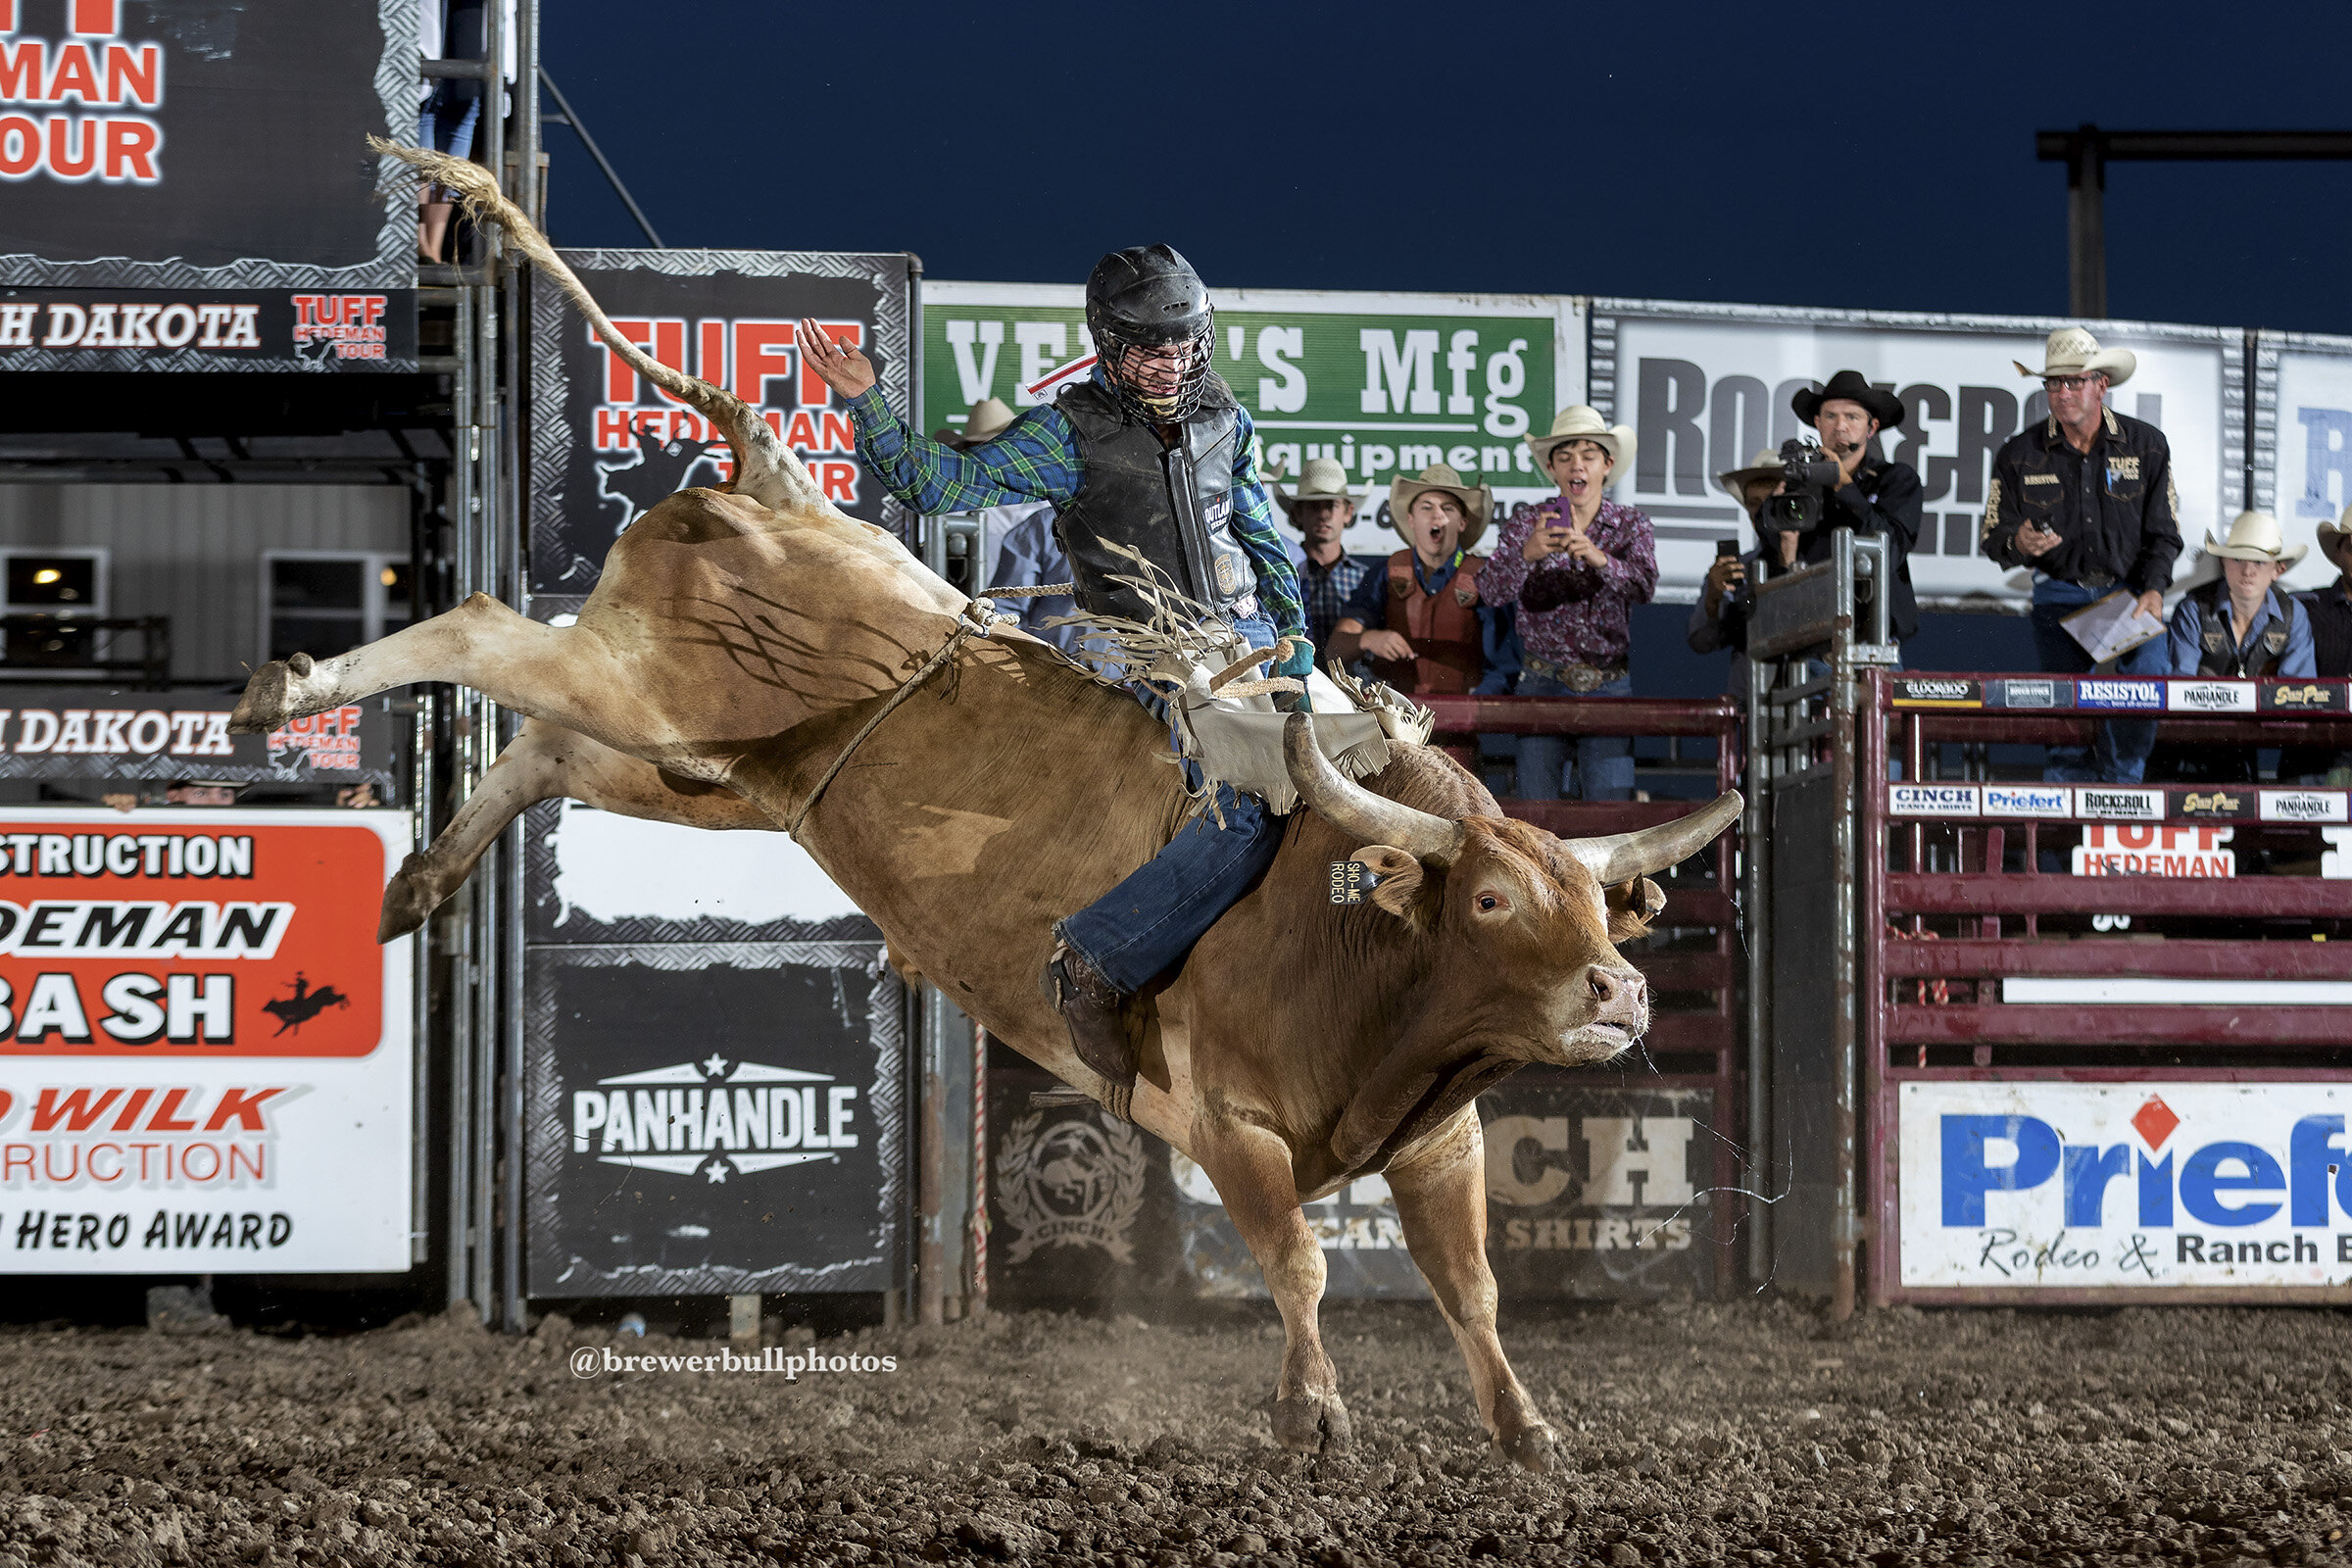 Waterloo fans should be watching for Breakout bull rider Caleb McCaslin who went 90 points last month at the THBRT in Huron.